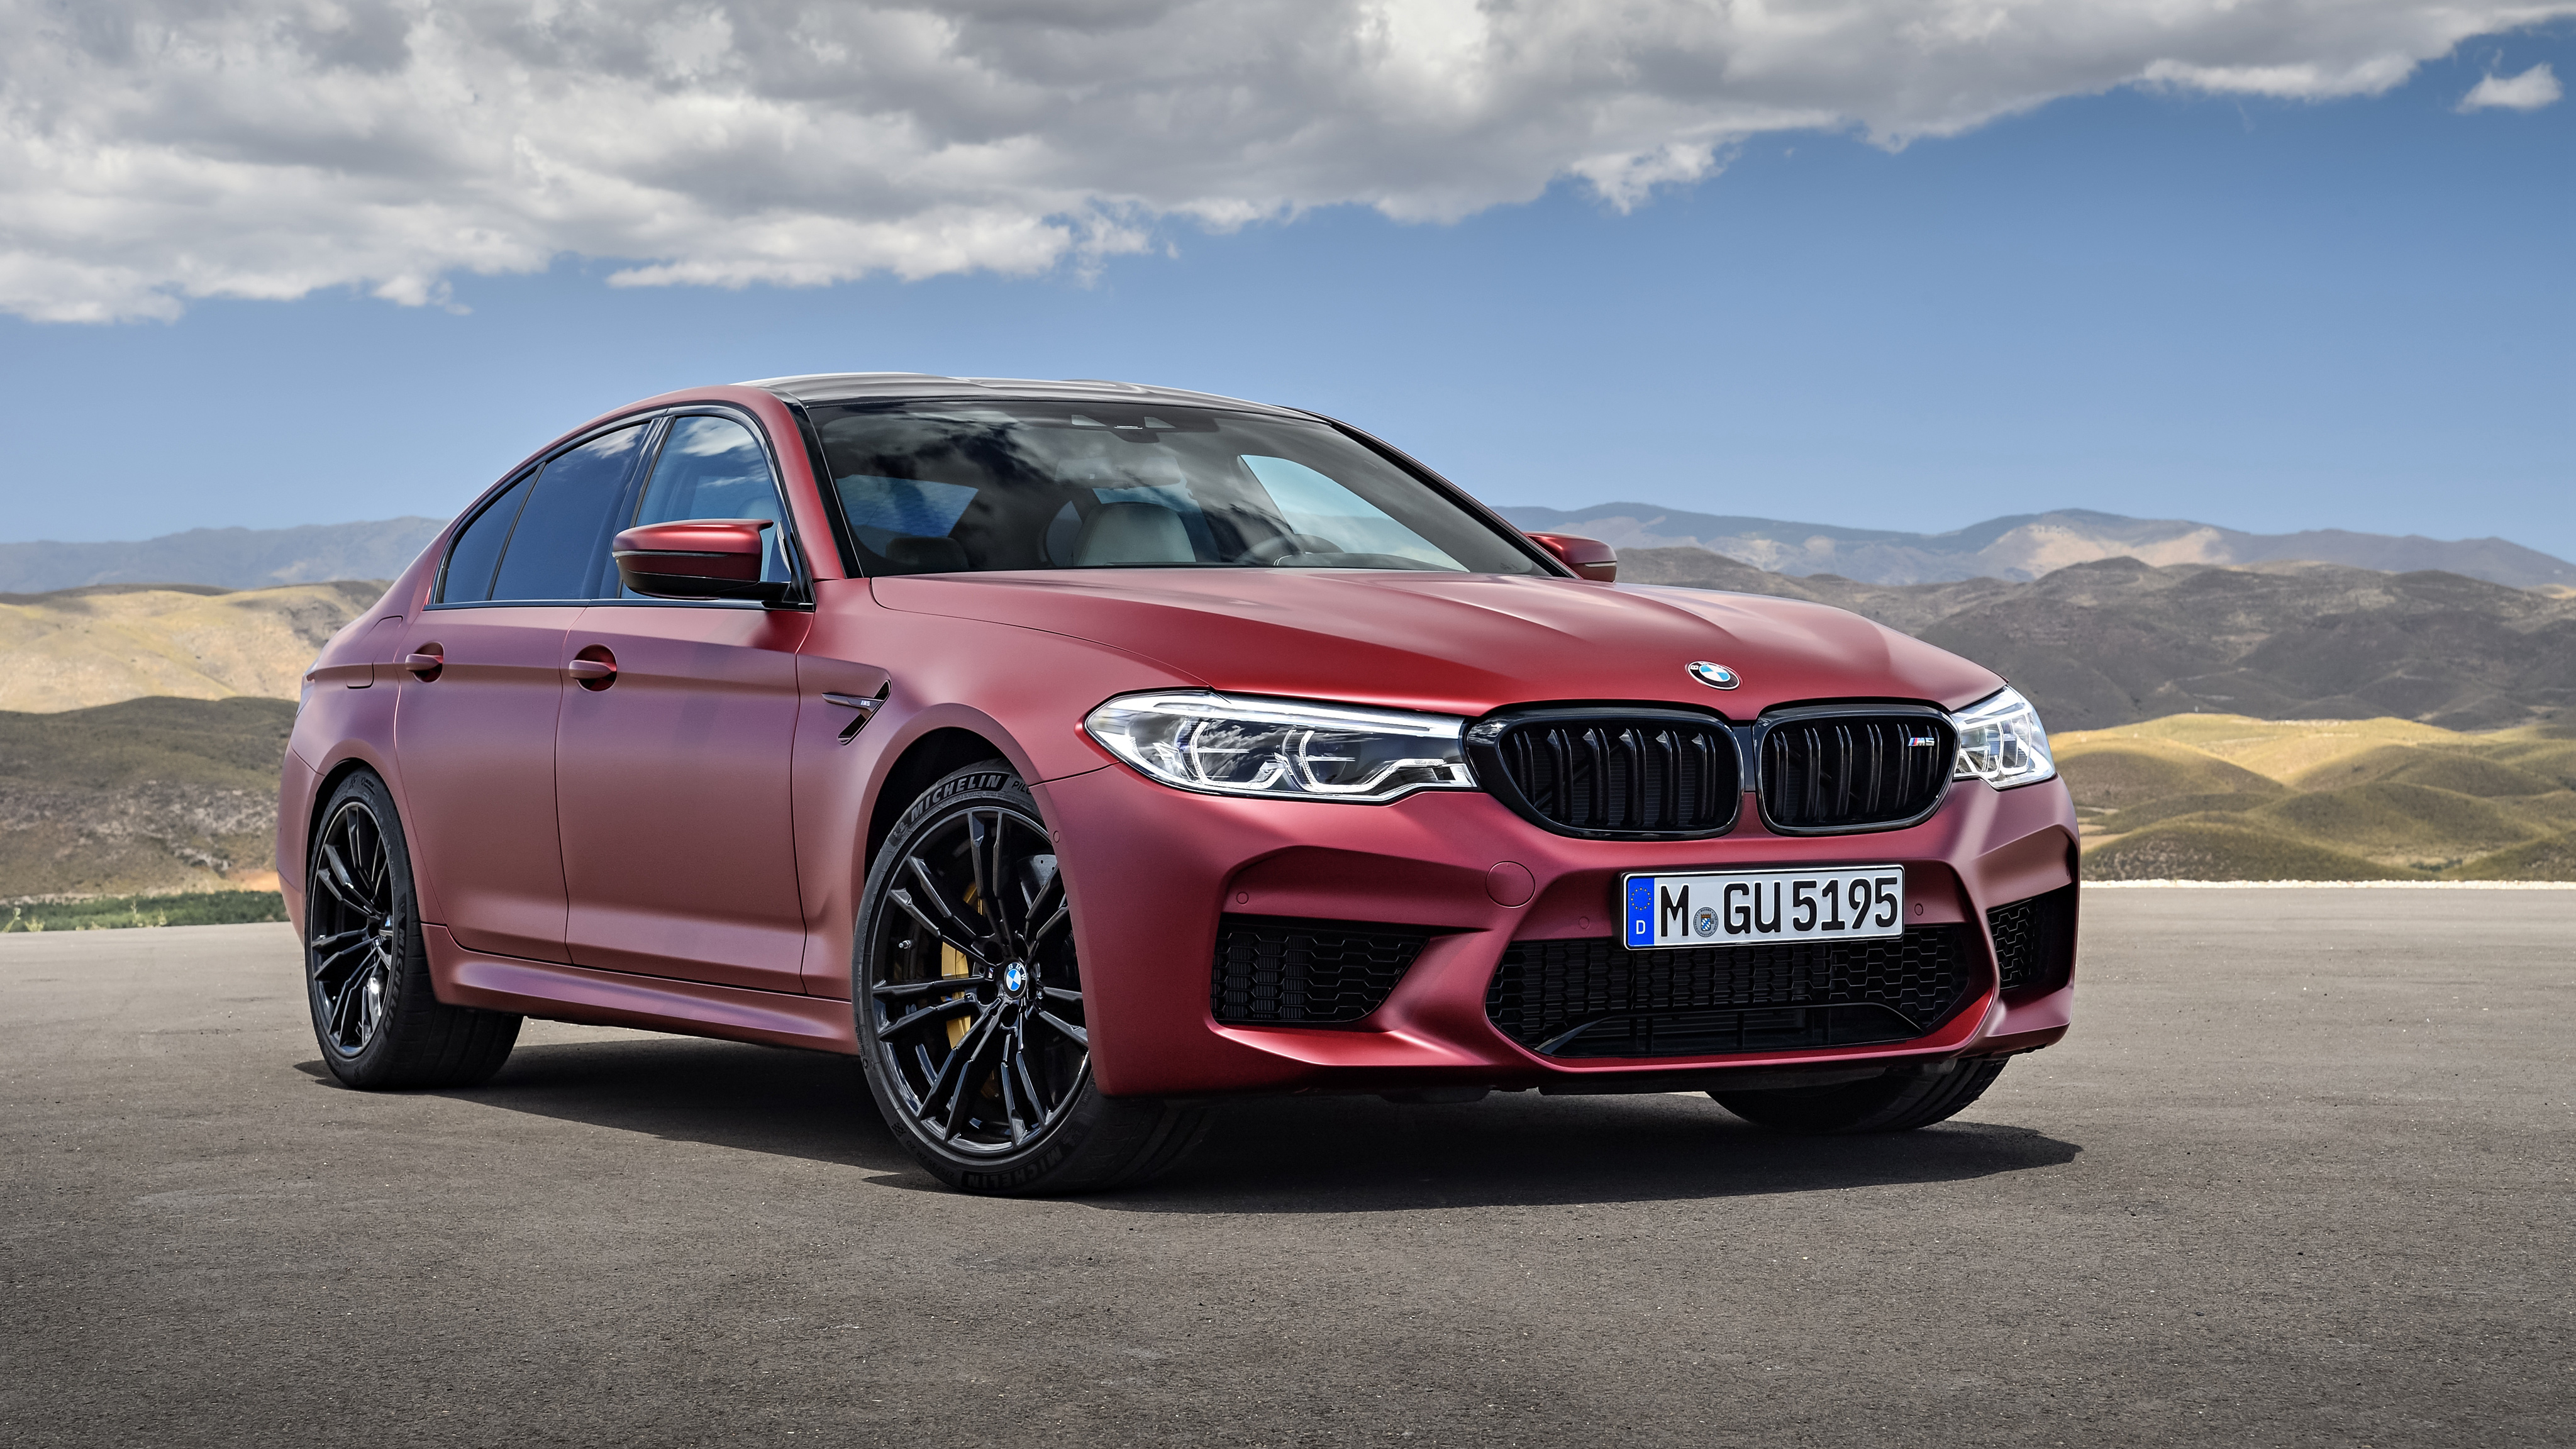 2018 Bmw M5 First Edition Wallpaper Hd Car Wallpapers Id 8274